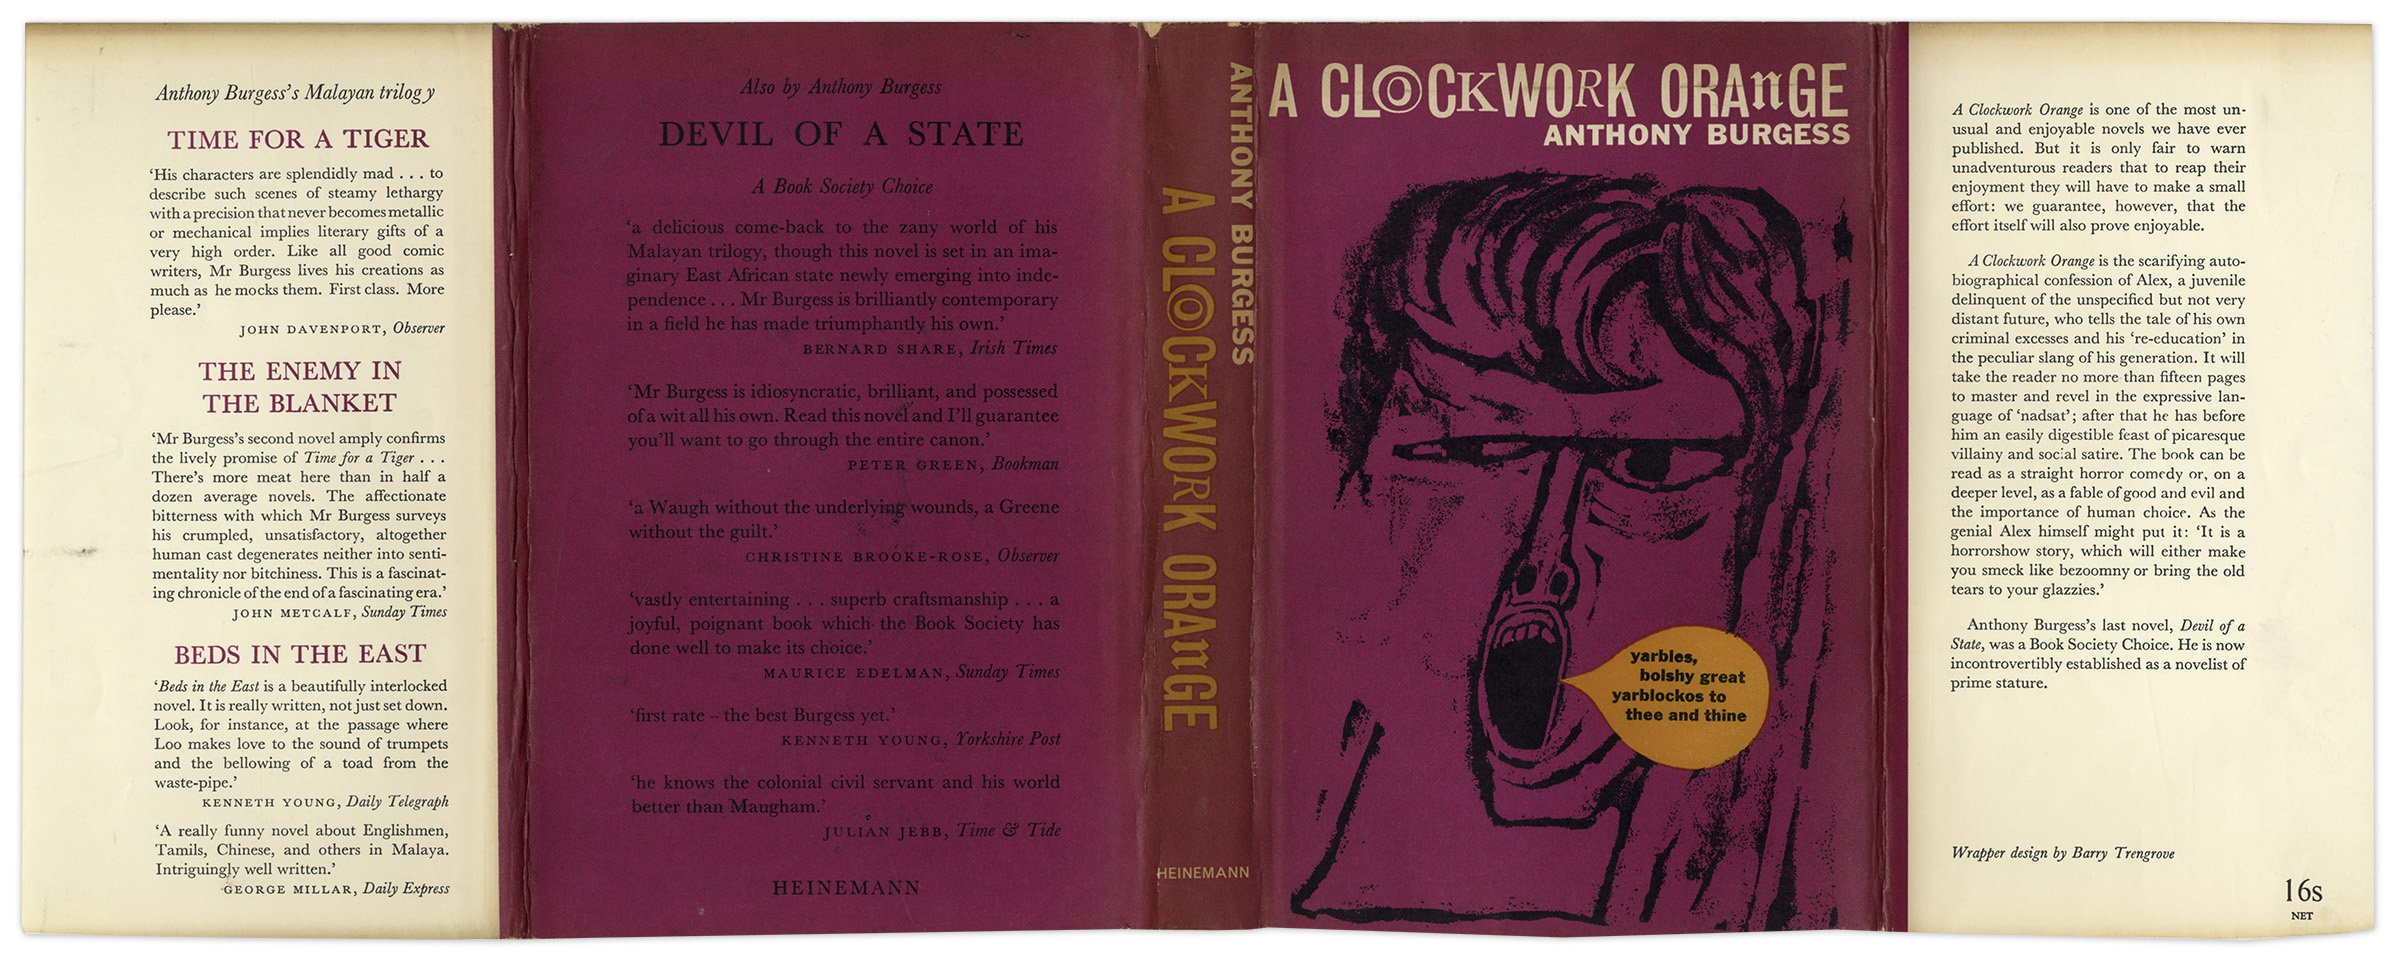 an analysis of a clockwork orange a novel by anthony burgess Of the fifty books anthony burgess wrote, this satiric, futurist novel surely is the most famous it was popularized by the controversial film adaptation made by stanley kubrick in 1971.